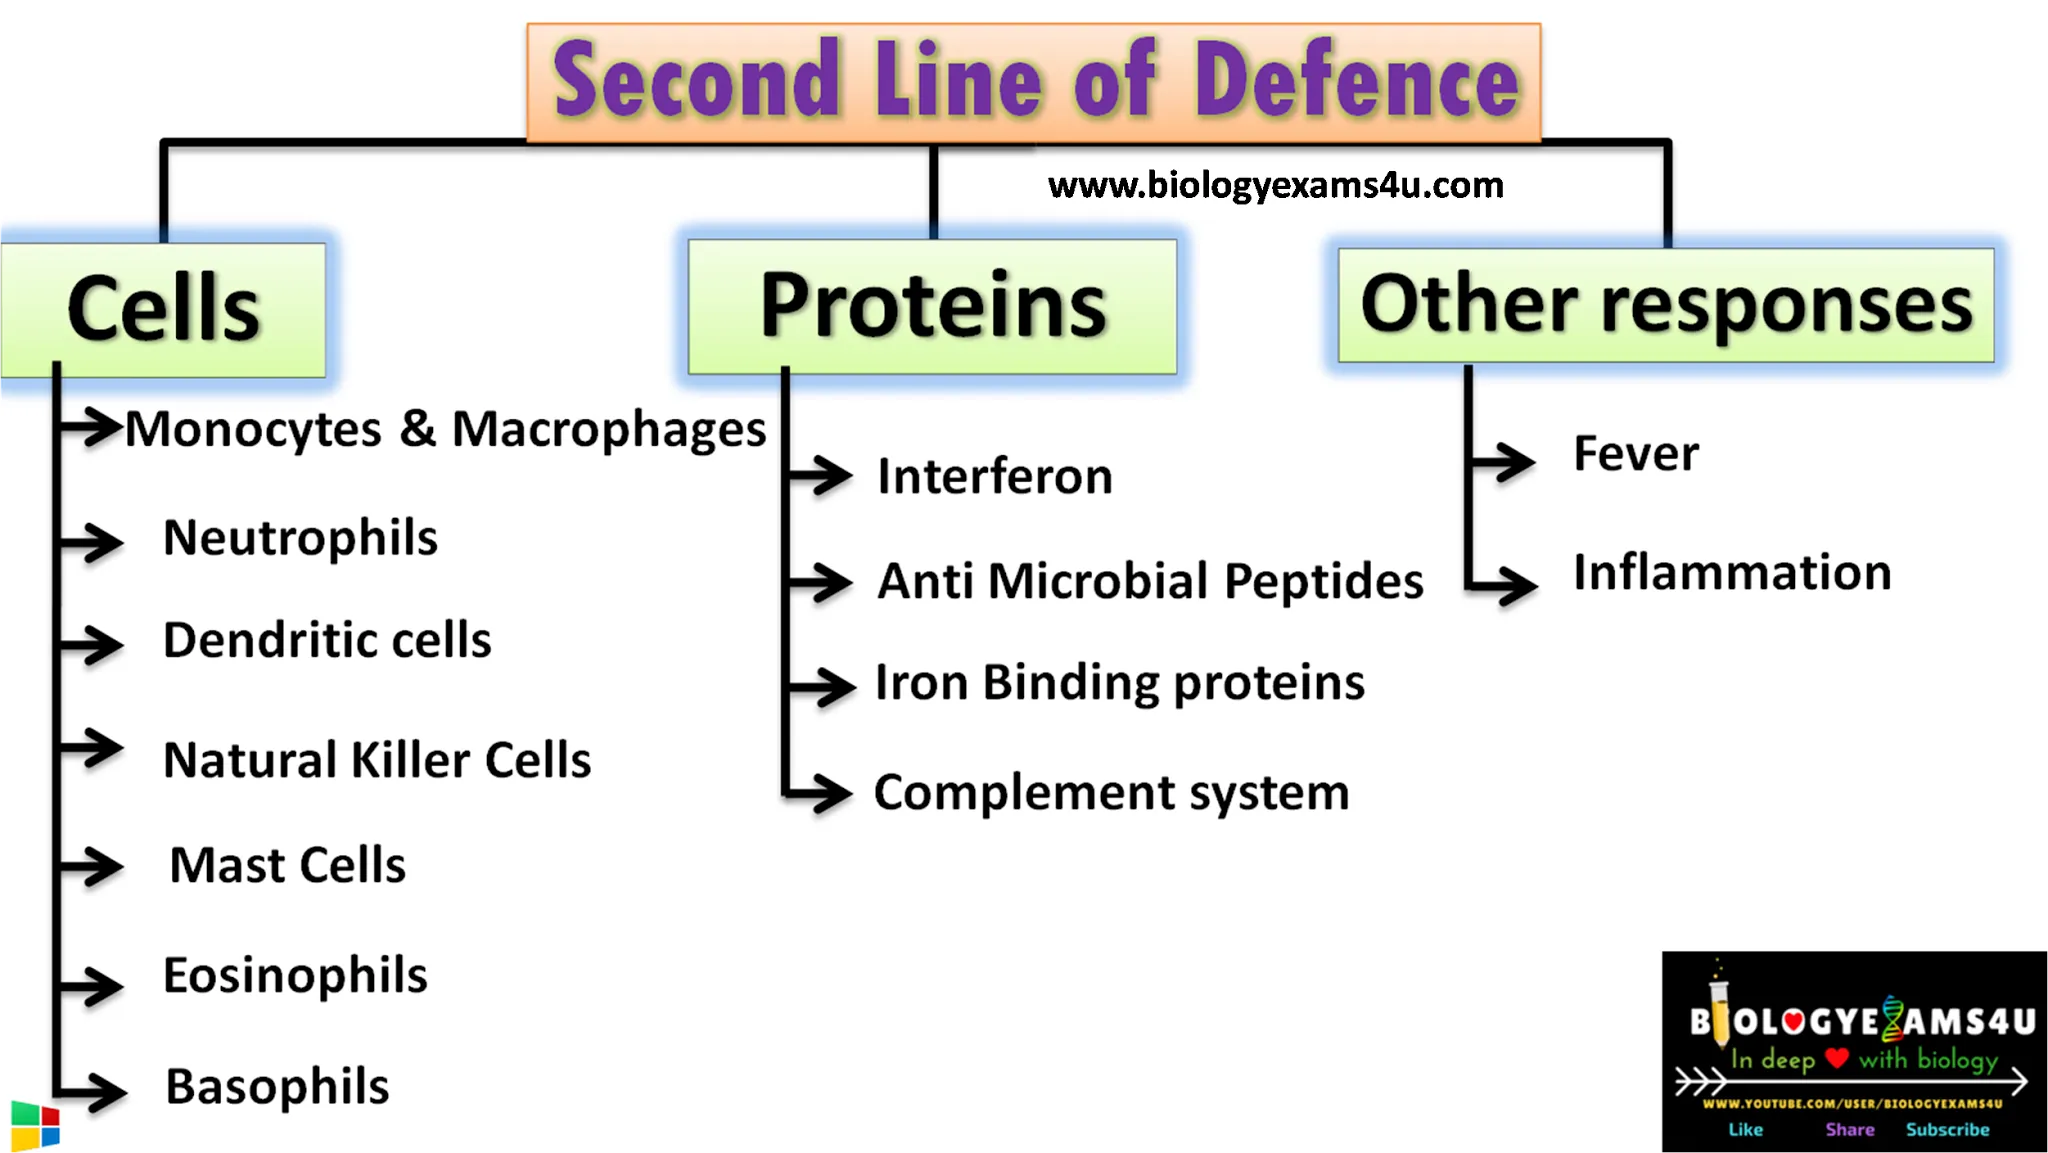 Second line of defense in immunology